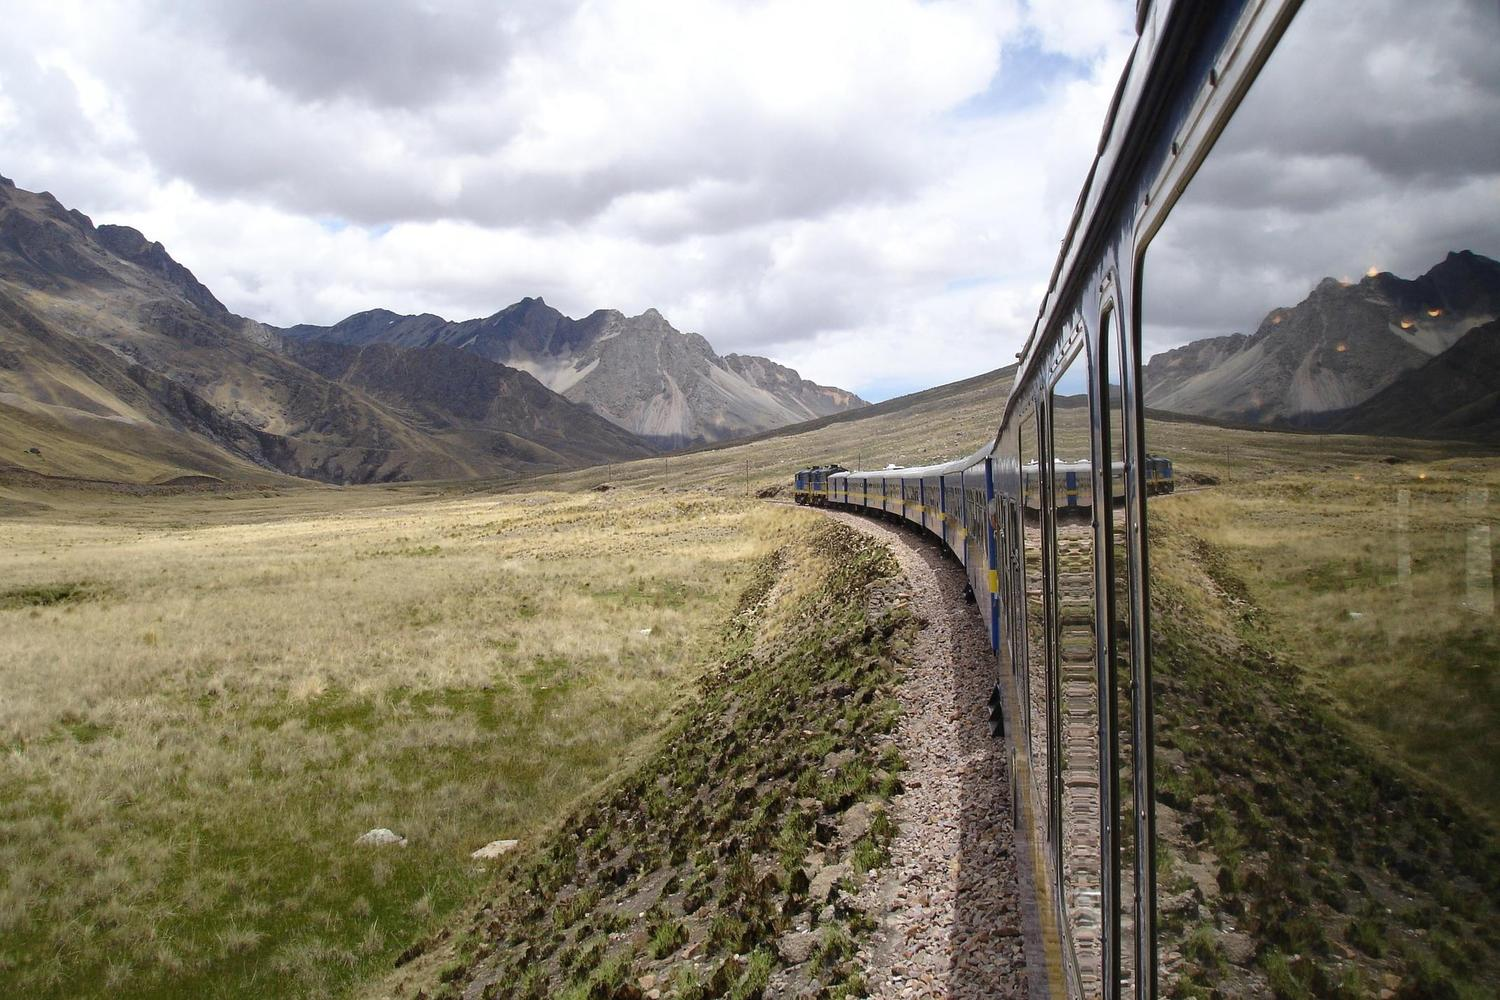 The Orient Express train across Peru's Altiplano